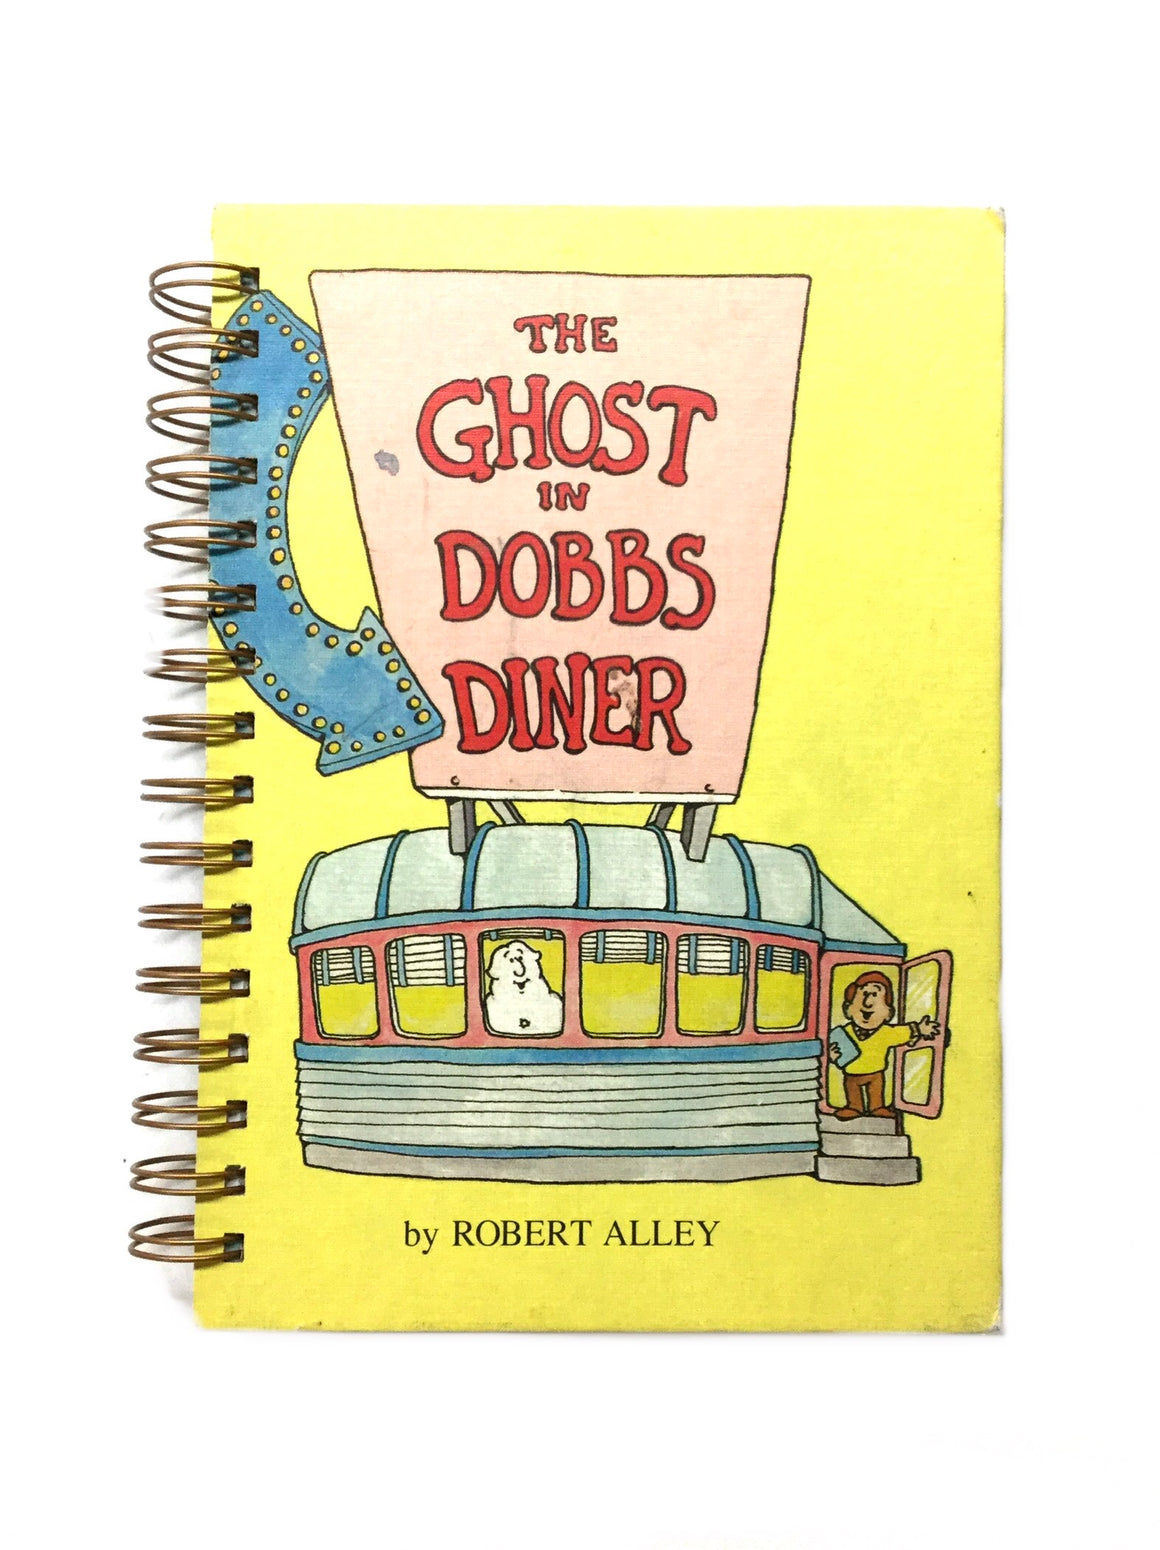 The Ghost in Dobbs Diner-Red Barn Collections